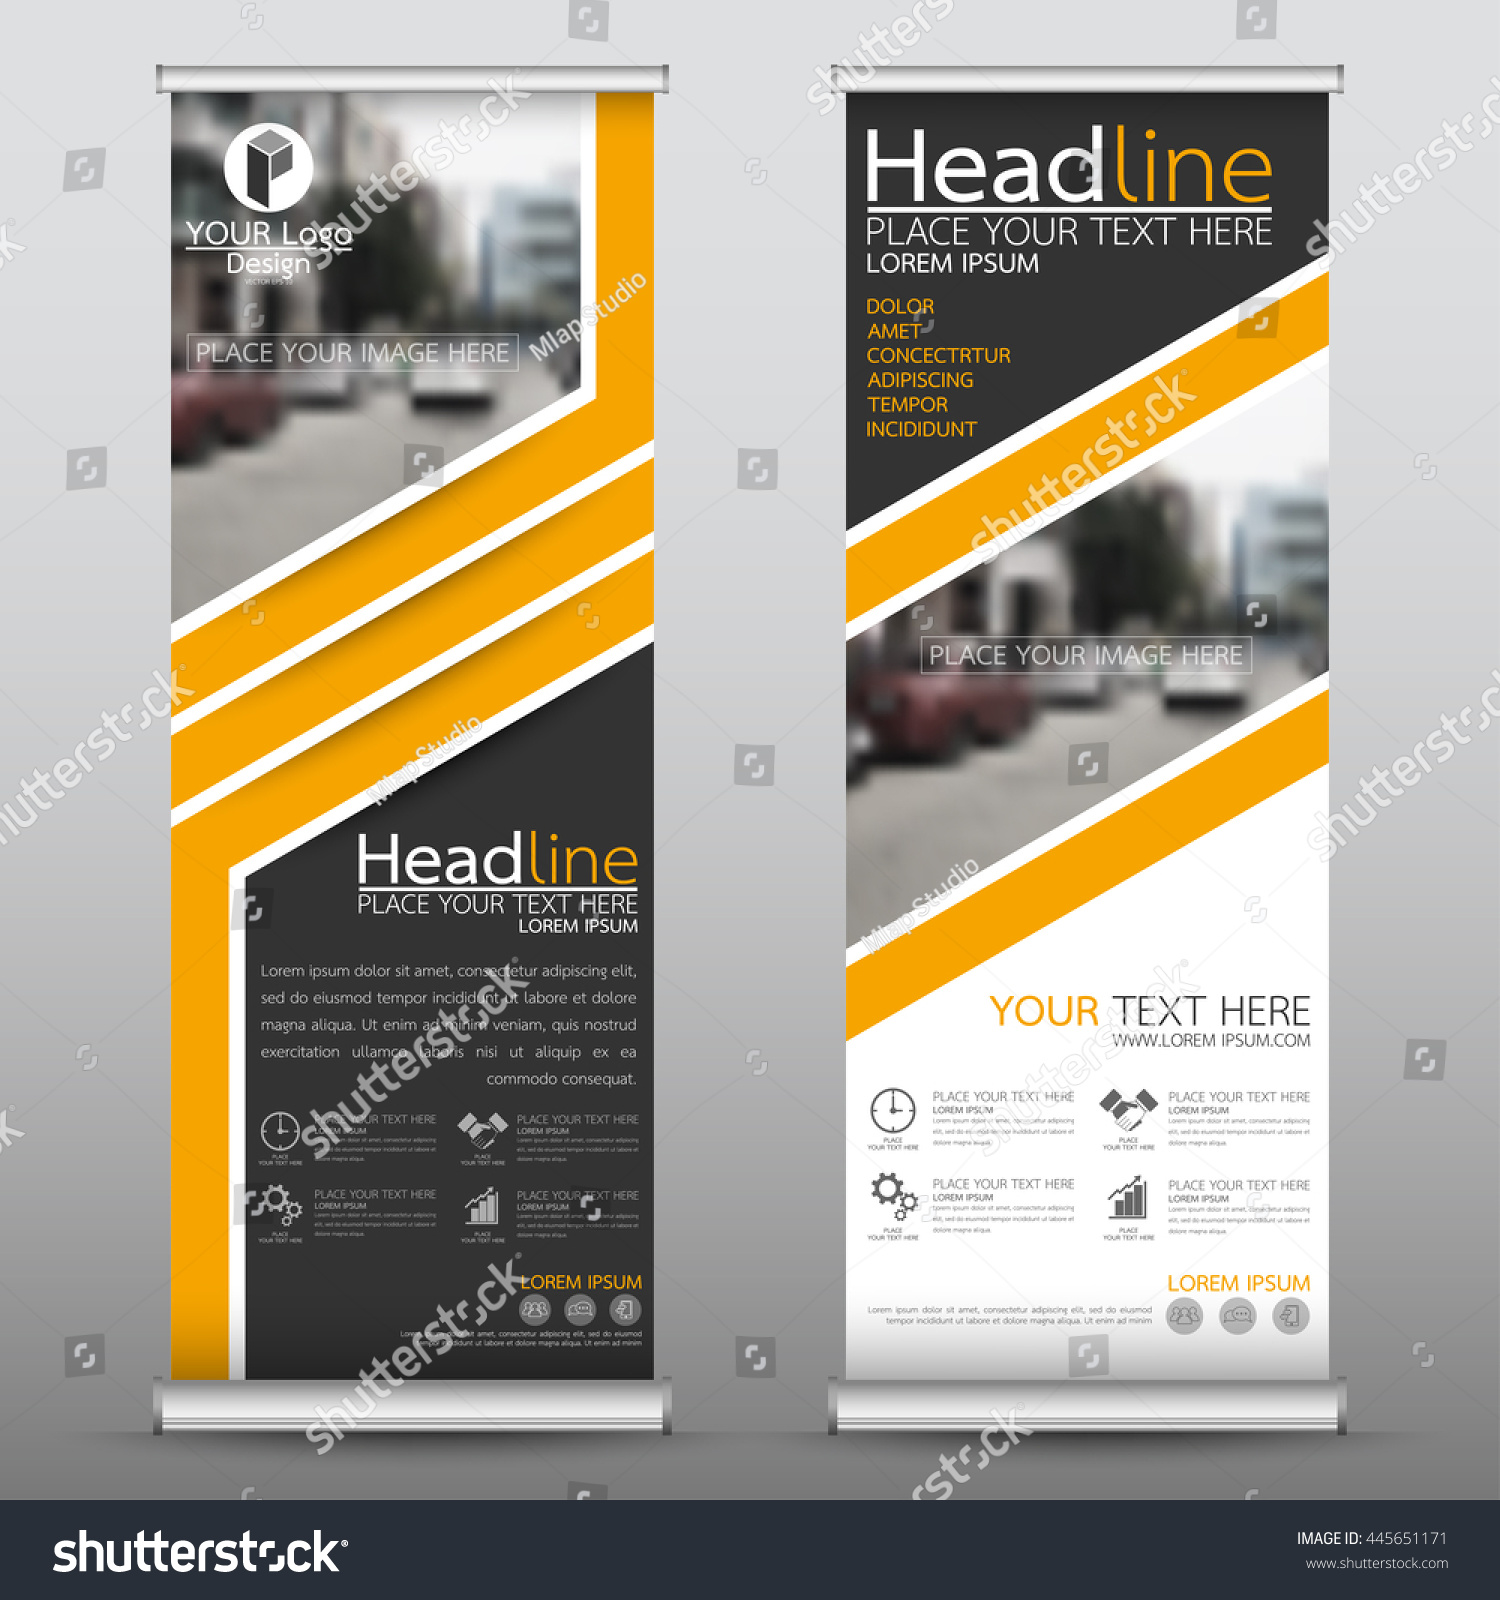 Green roll up business brochure flyer banner design vertical template - Yellow Roll Up Business Brochure Flyer Banner Design Vertical Template Vector Cover Presentation Abstract Geometric